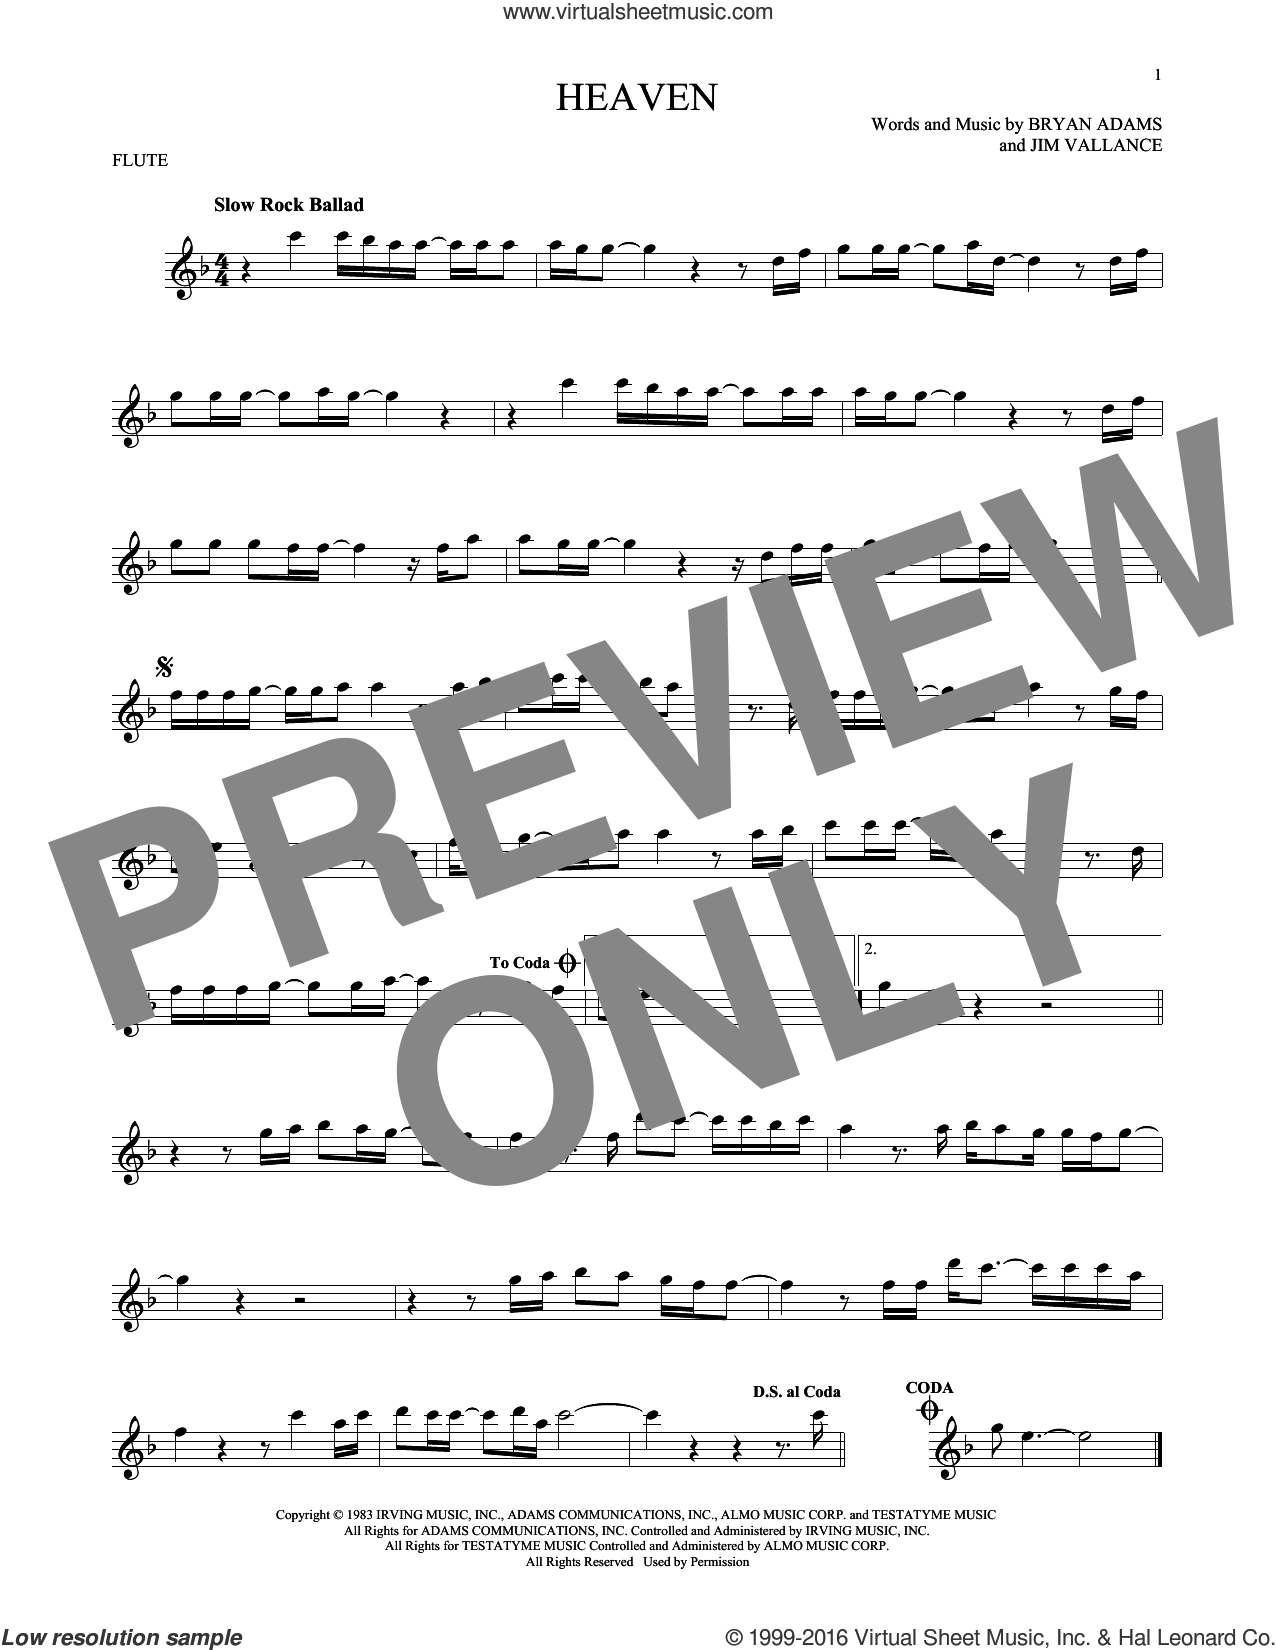 Heaven sheet music for flute solo by Bryan Adams and Jim Vallance, intermediate